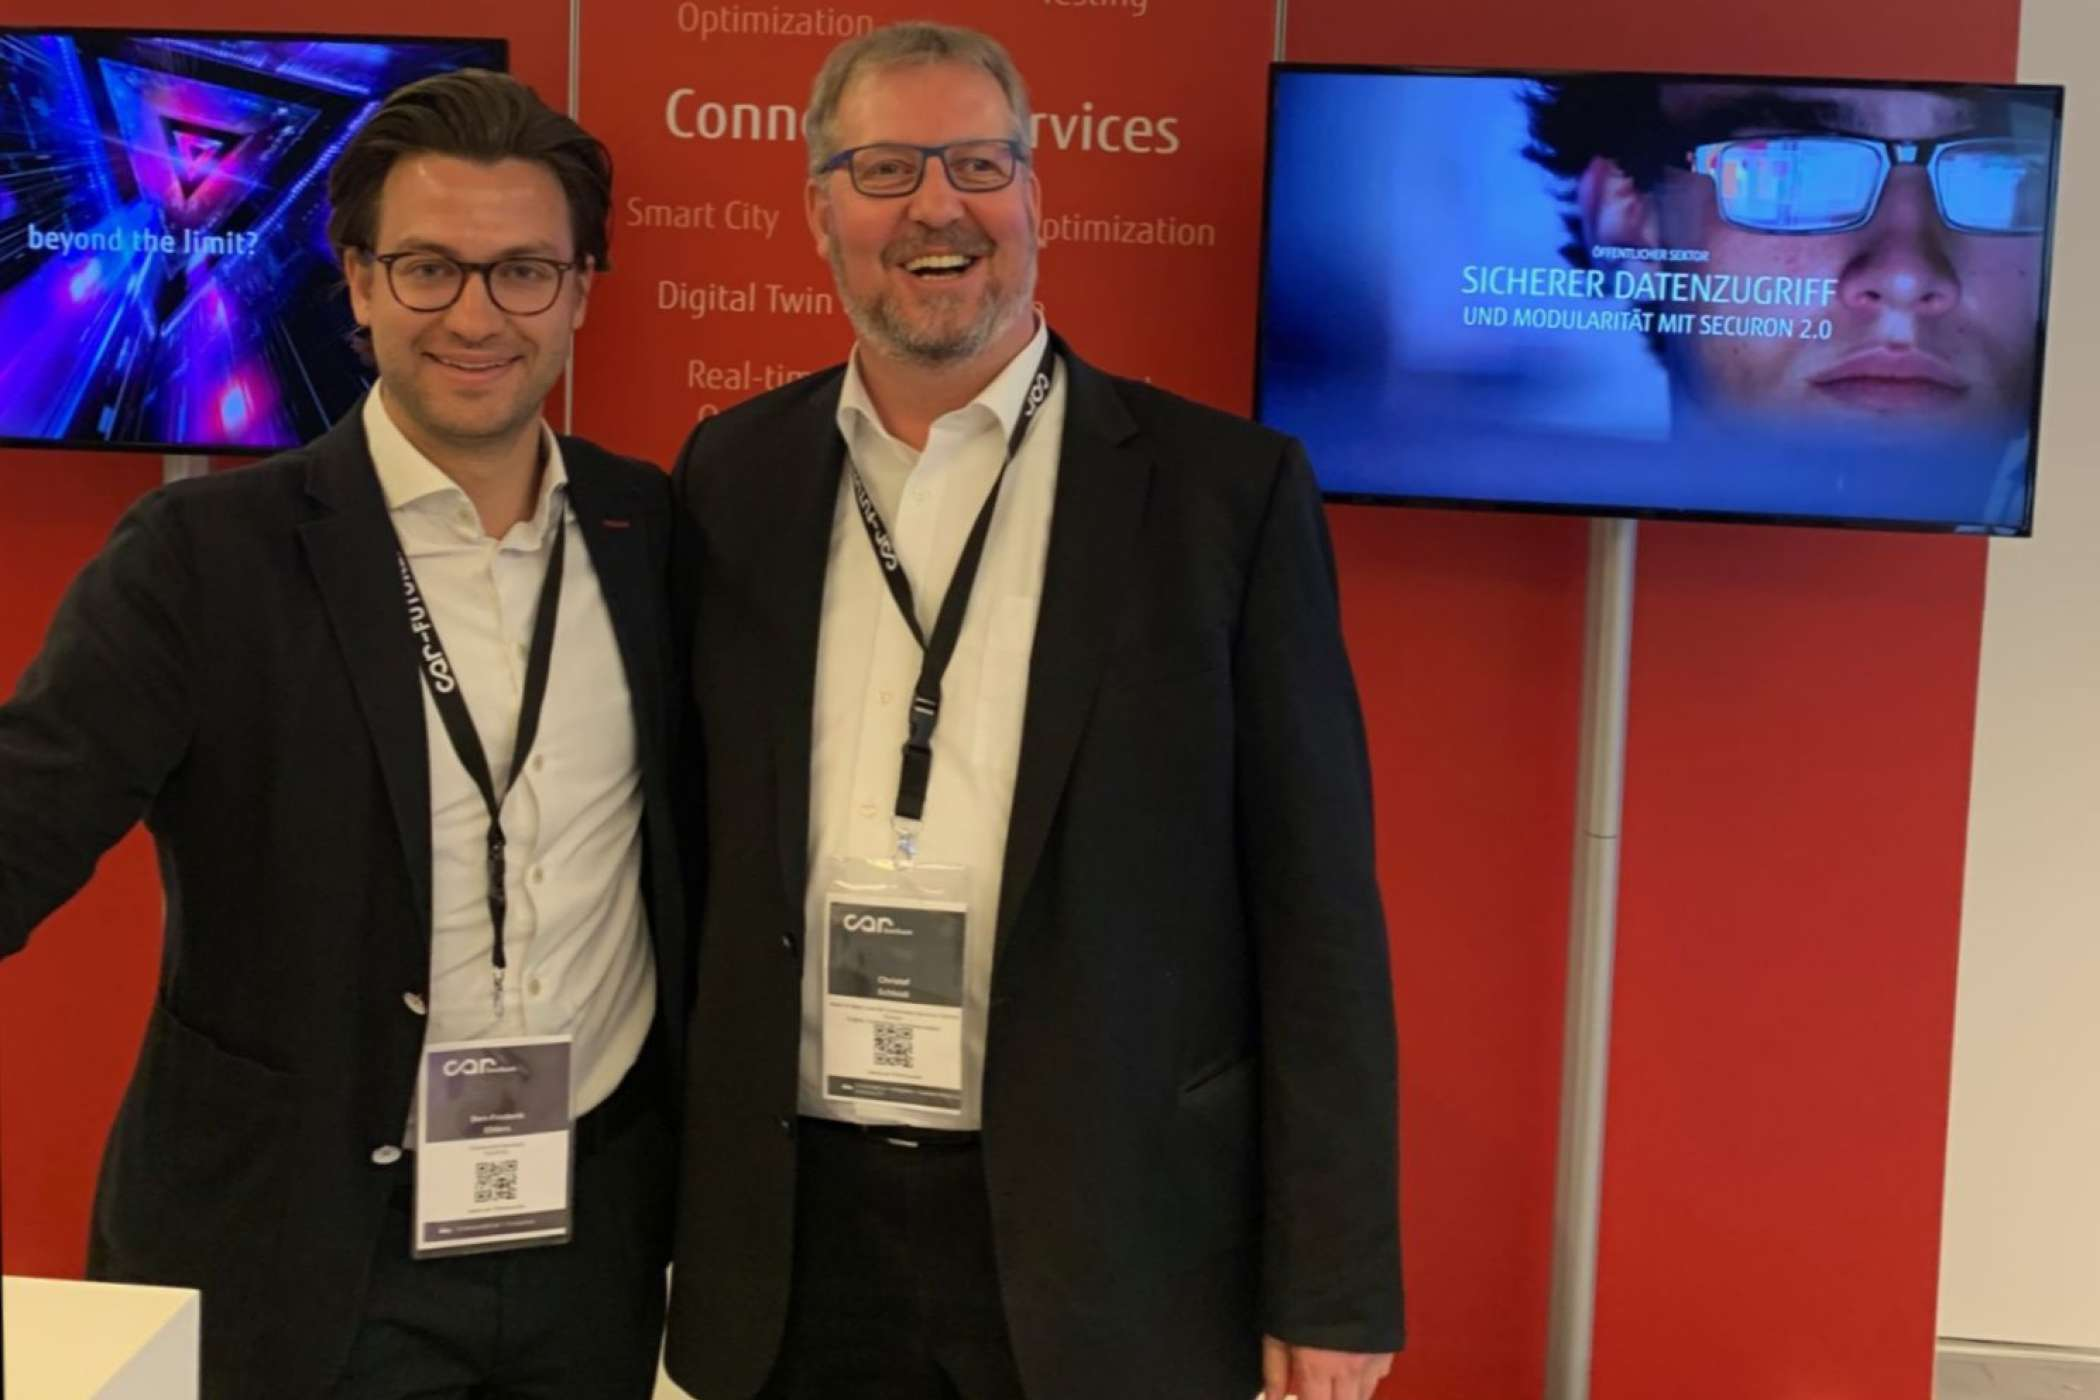 Komplexe Programme für Carsharer und Co. entstehen bei Fujitsu, hier vertreten durch Christof Schleidt, Head of Sales & Business Development Connected Services Manufacturing & Automotive Central Europe | Foto: M. Frey